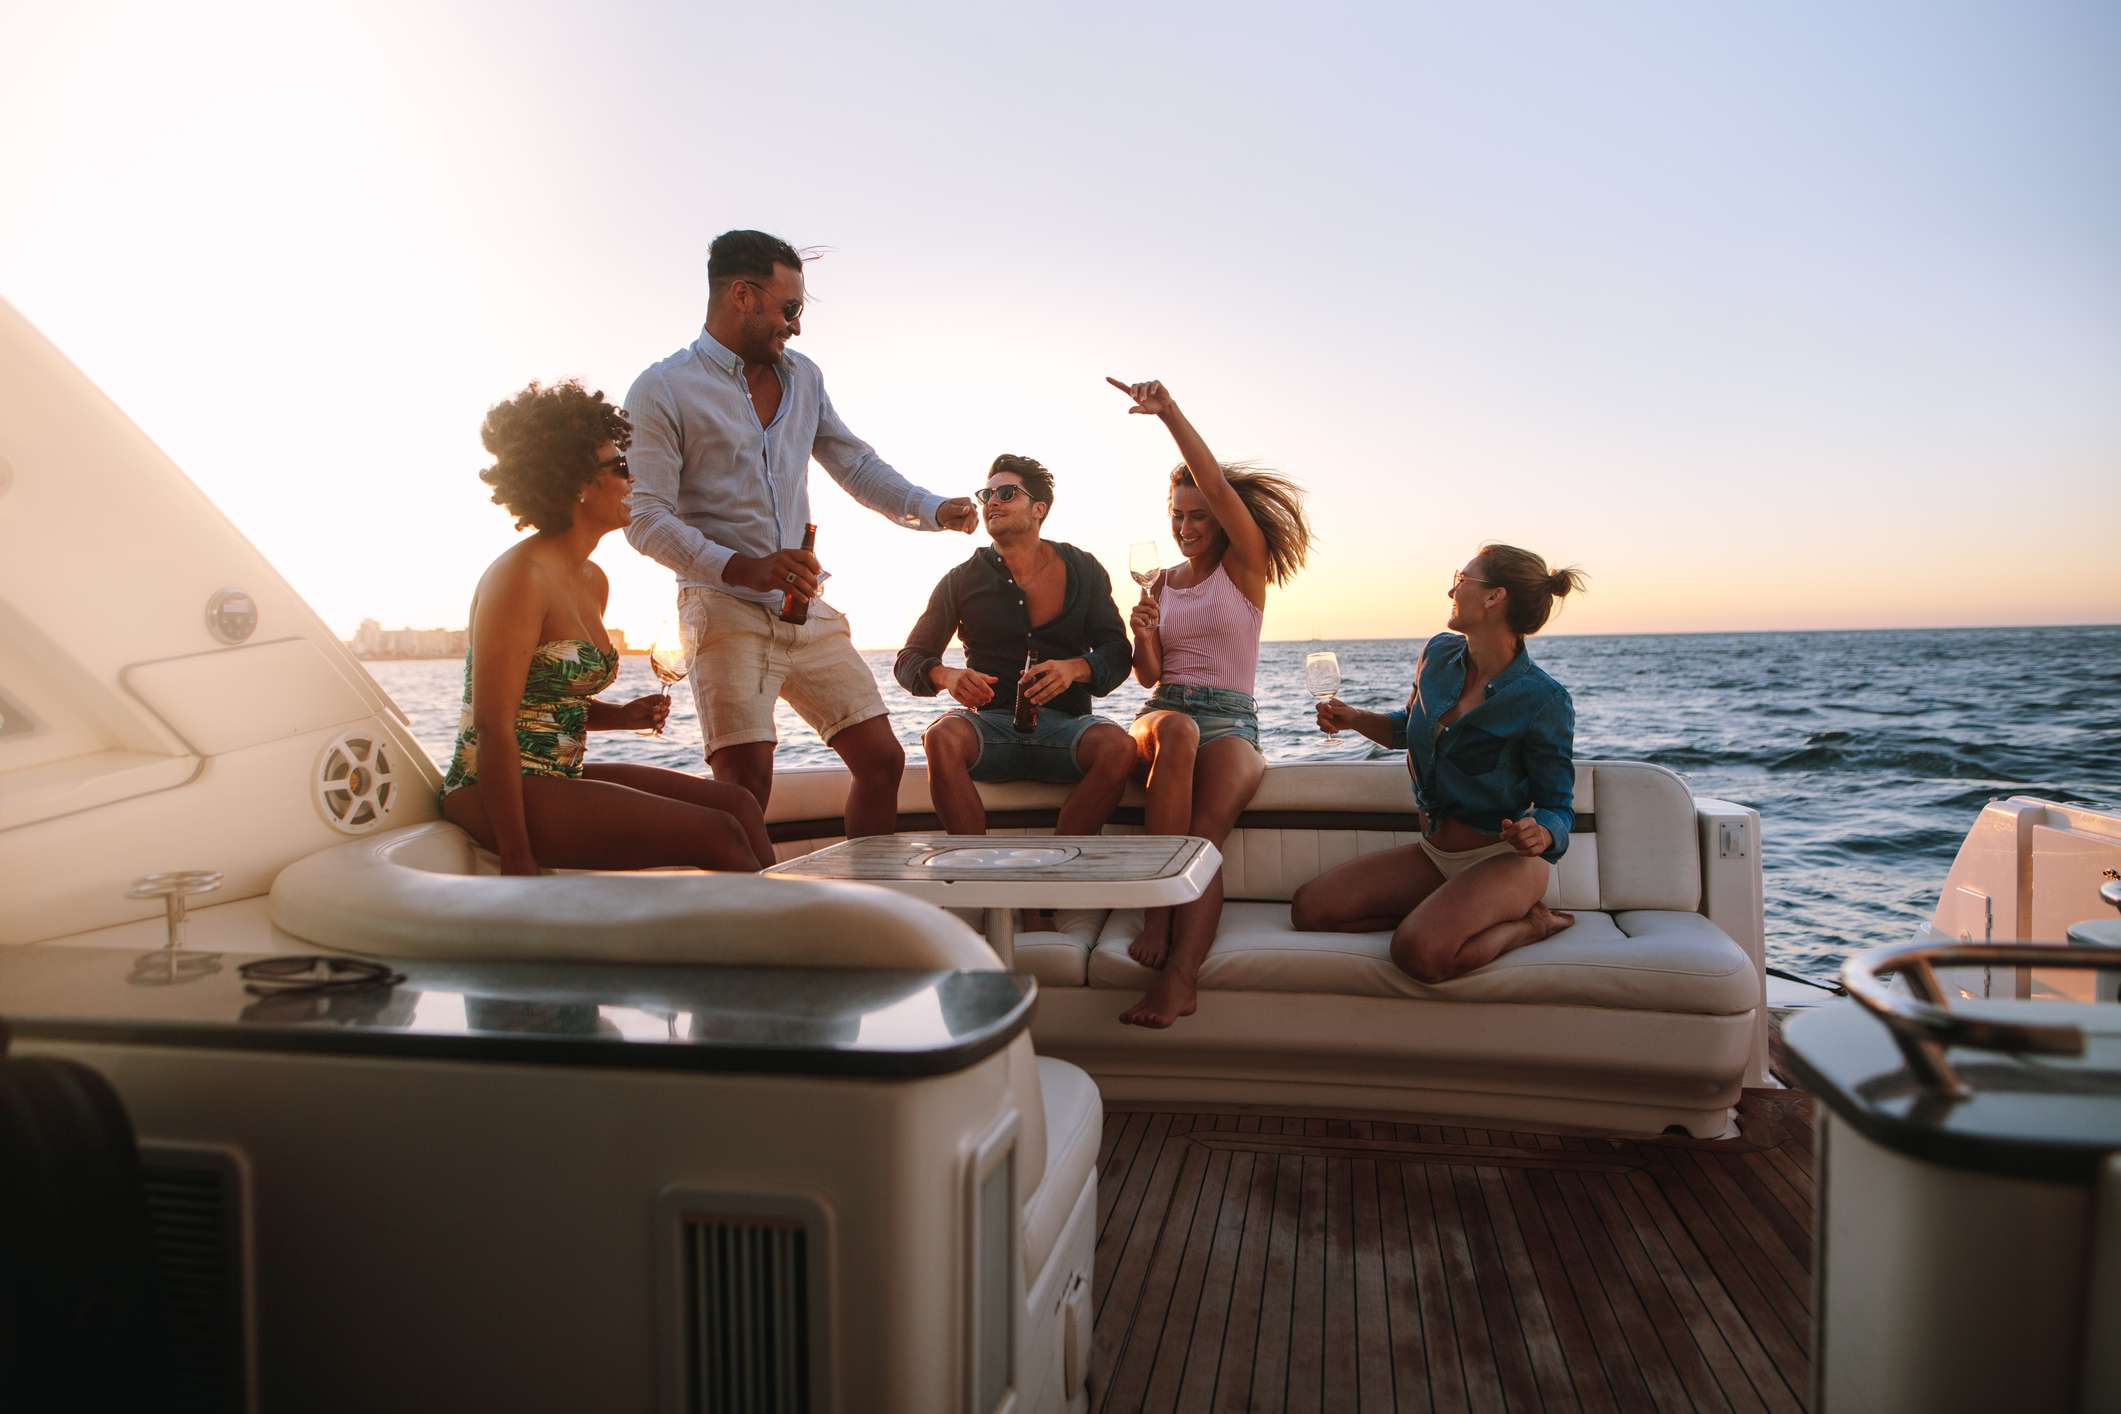 Five friends drinking beer and wine on a boat